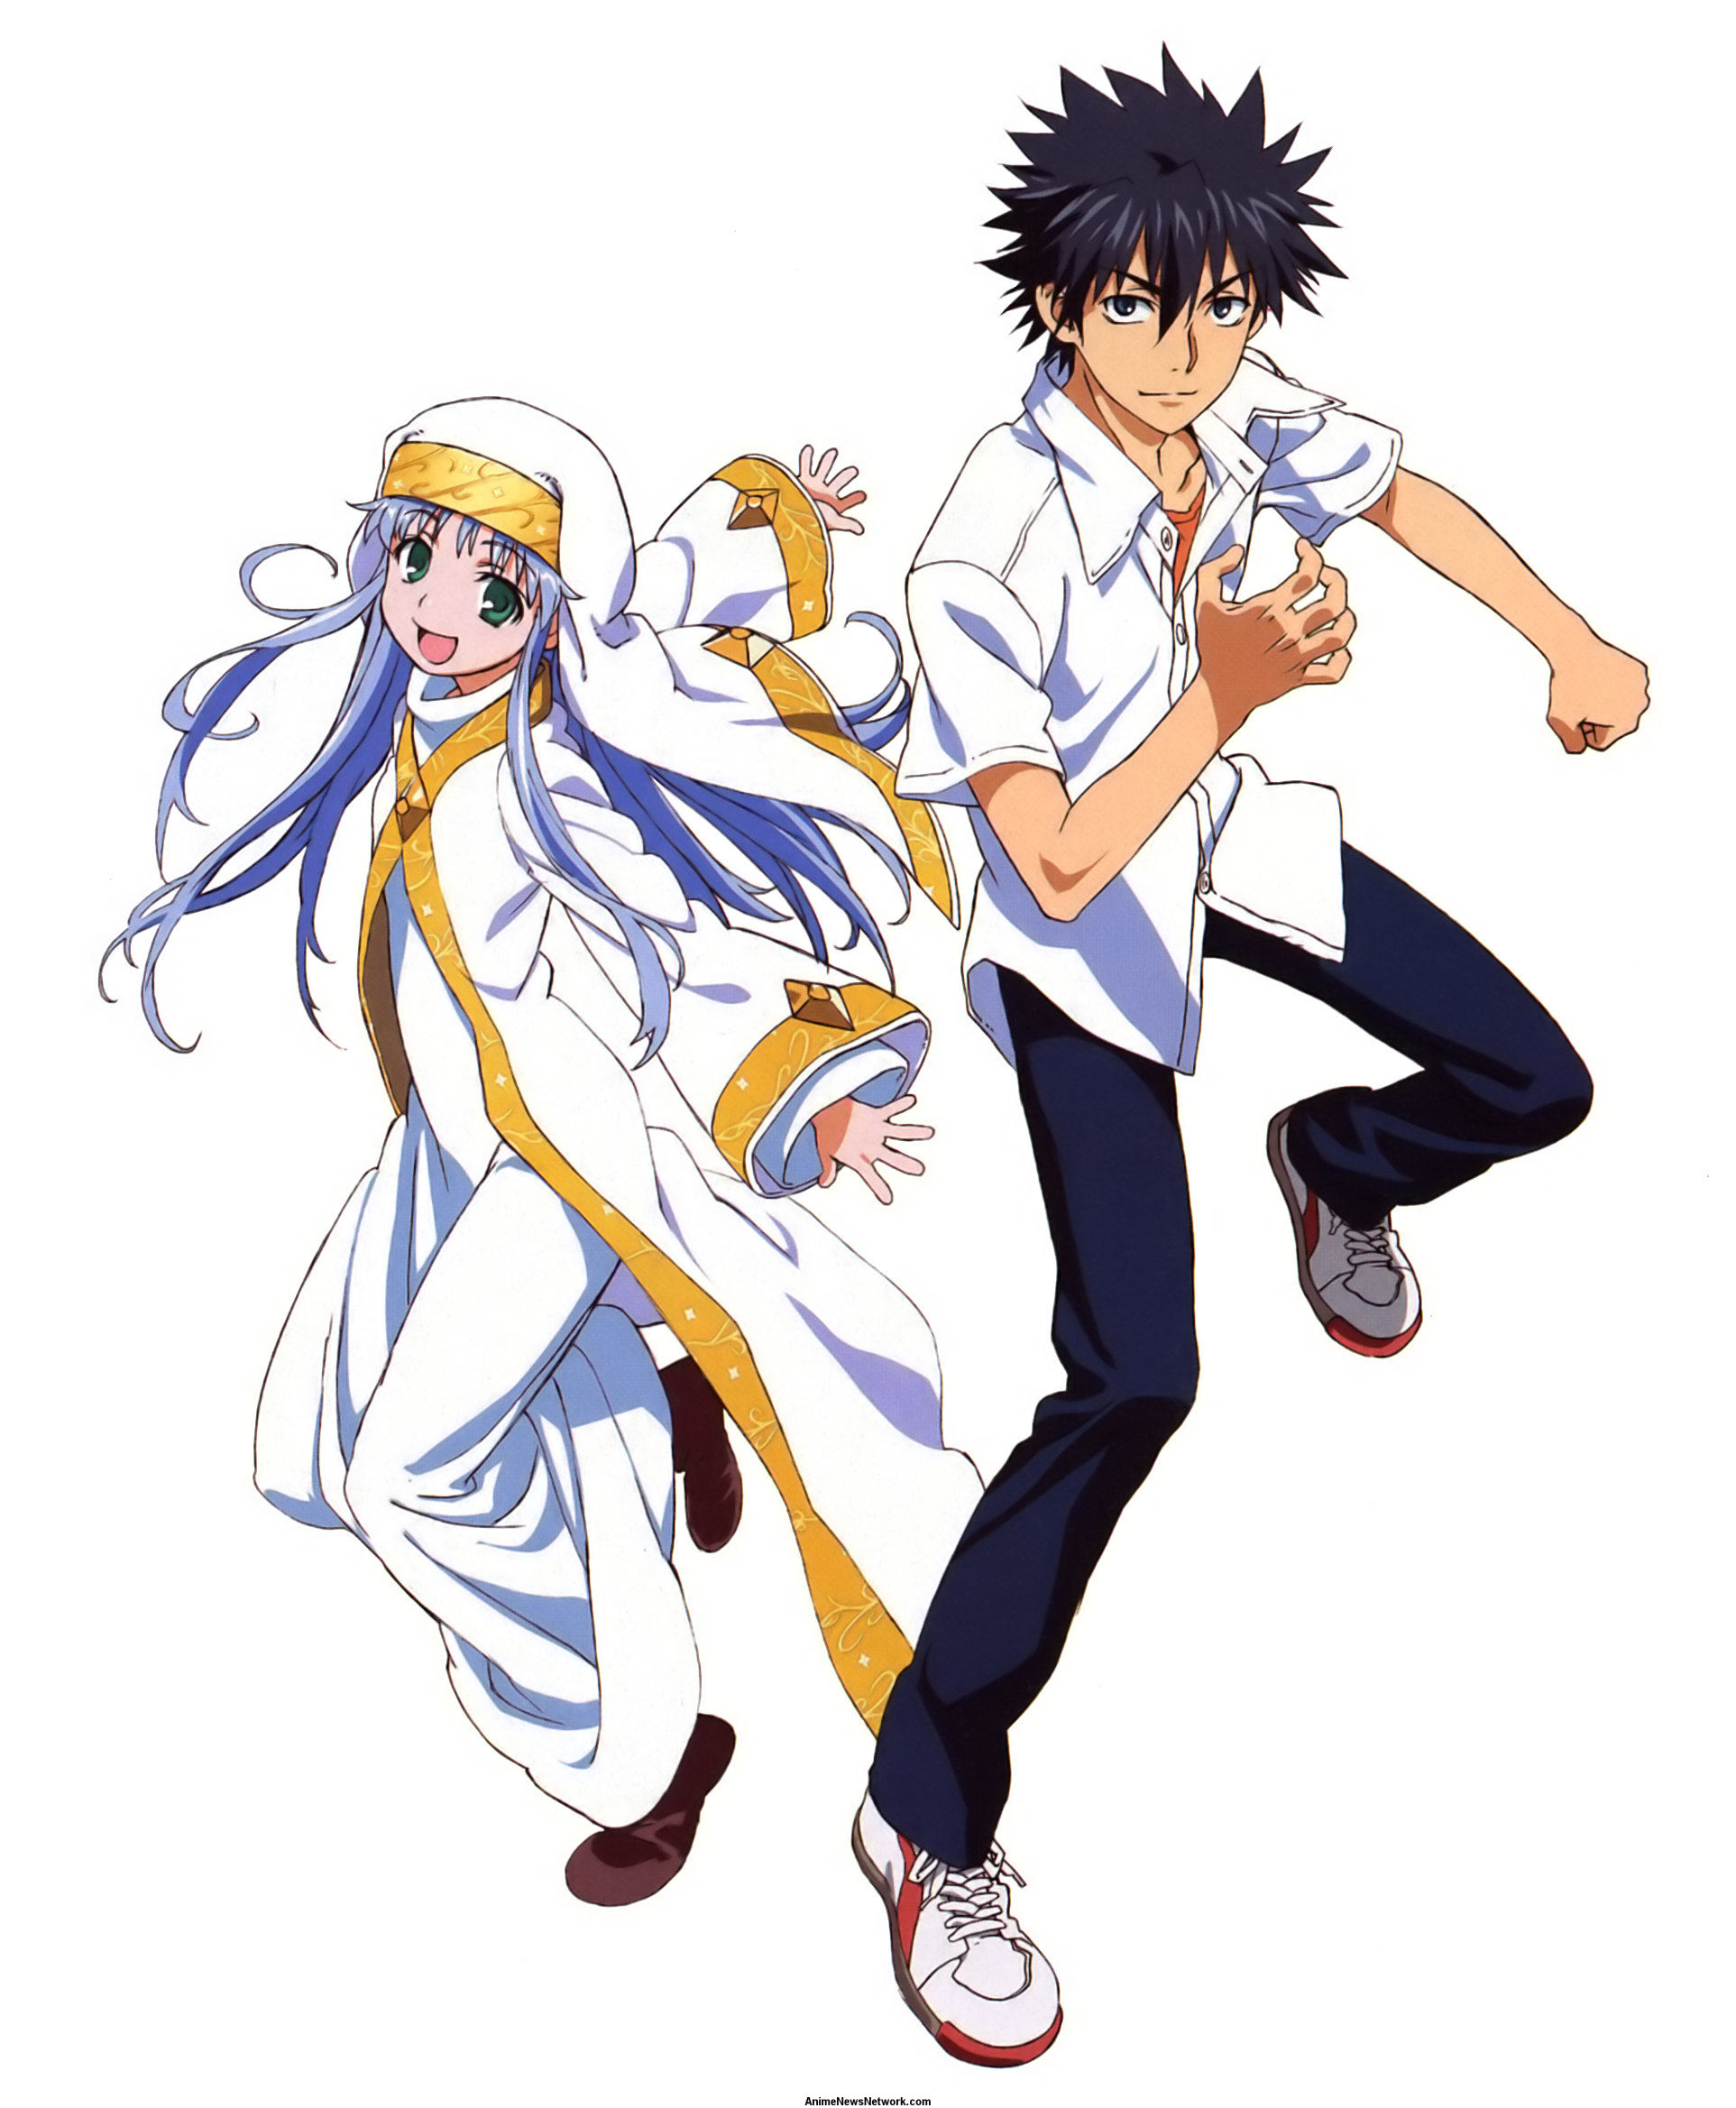 A Certain Magical Index Episodes 15-24 Streaming - Review - Anime